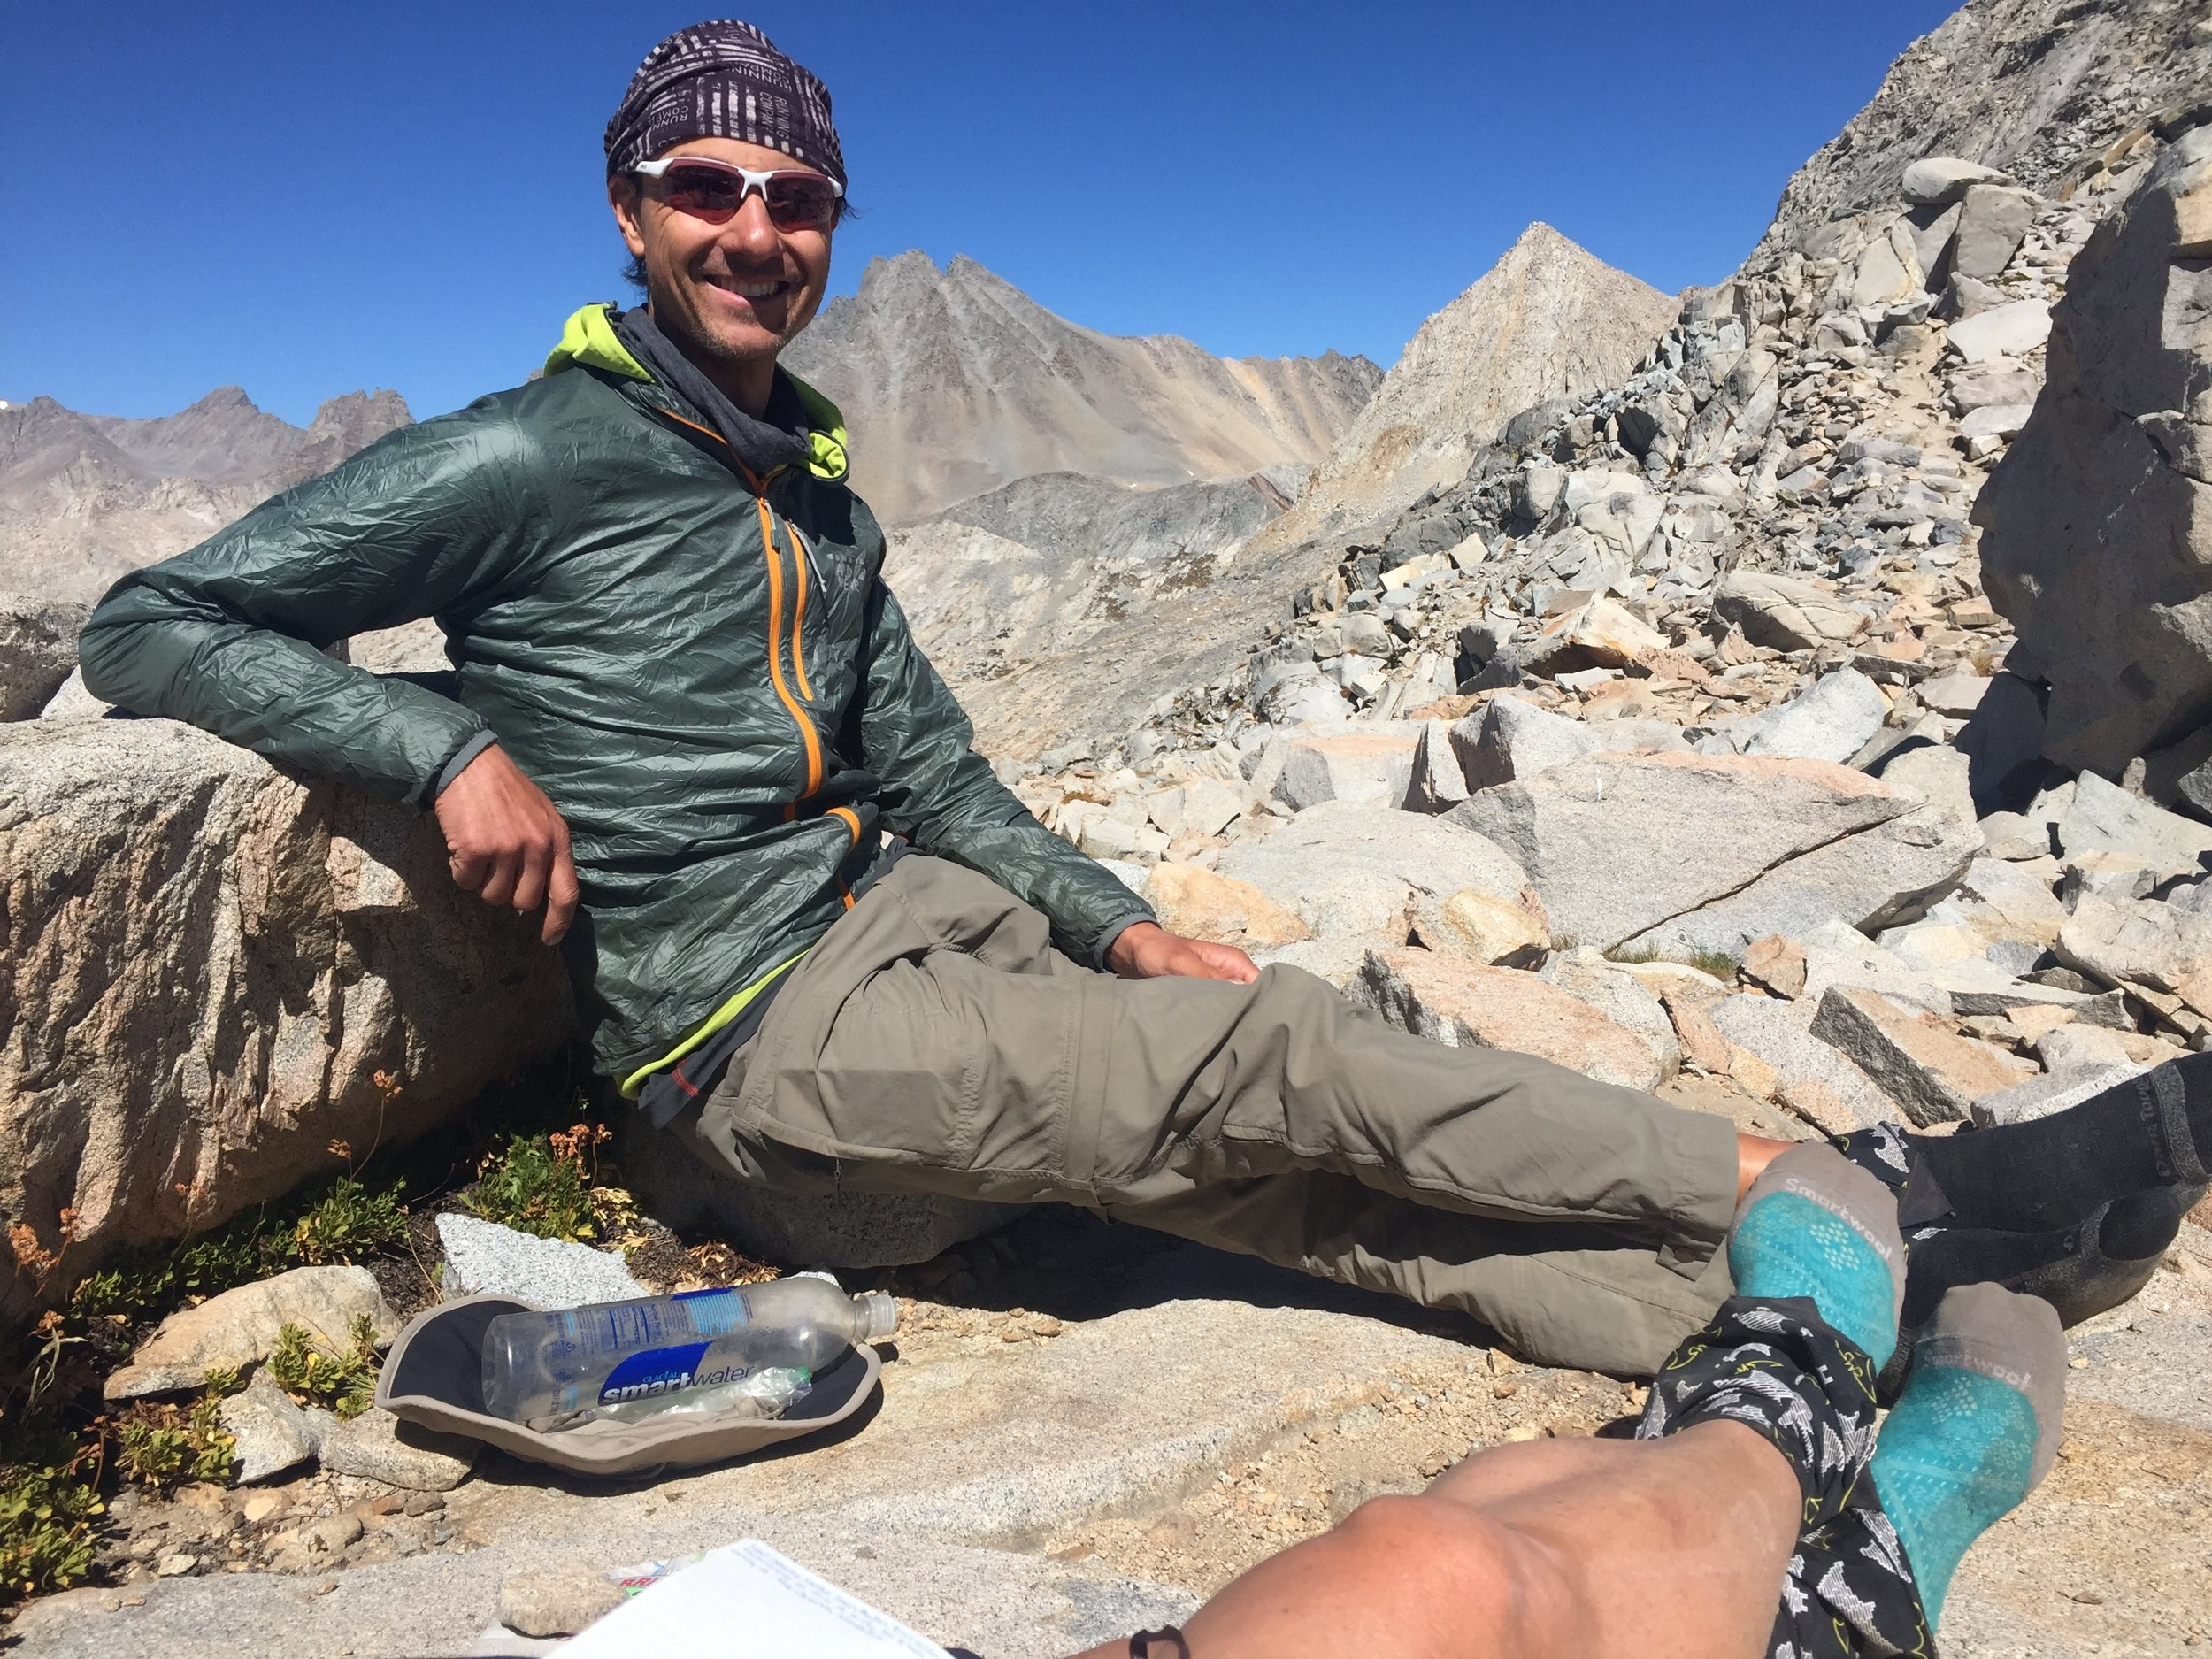 Sitting atop Mather Pass (12,100') on October 1, AKA Day 88